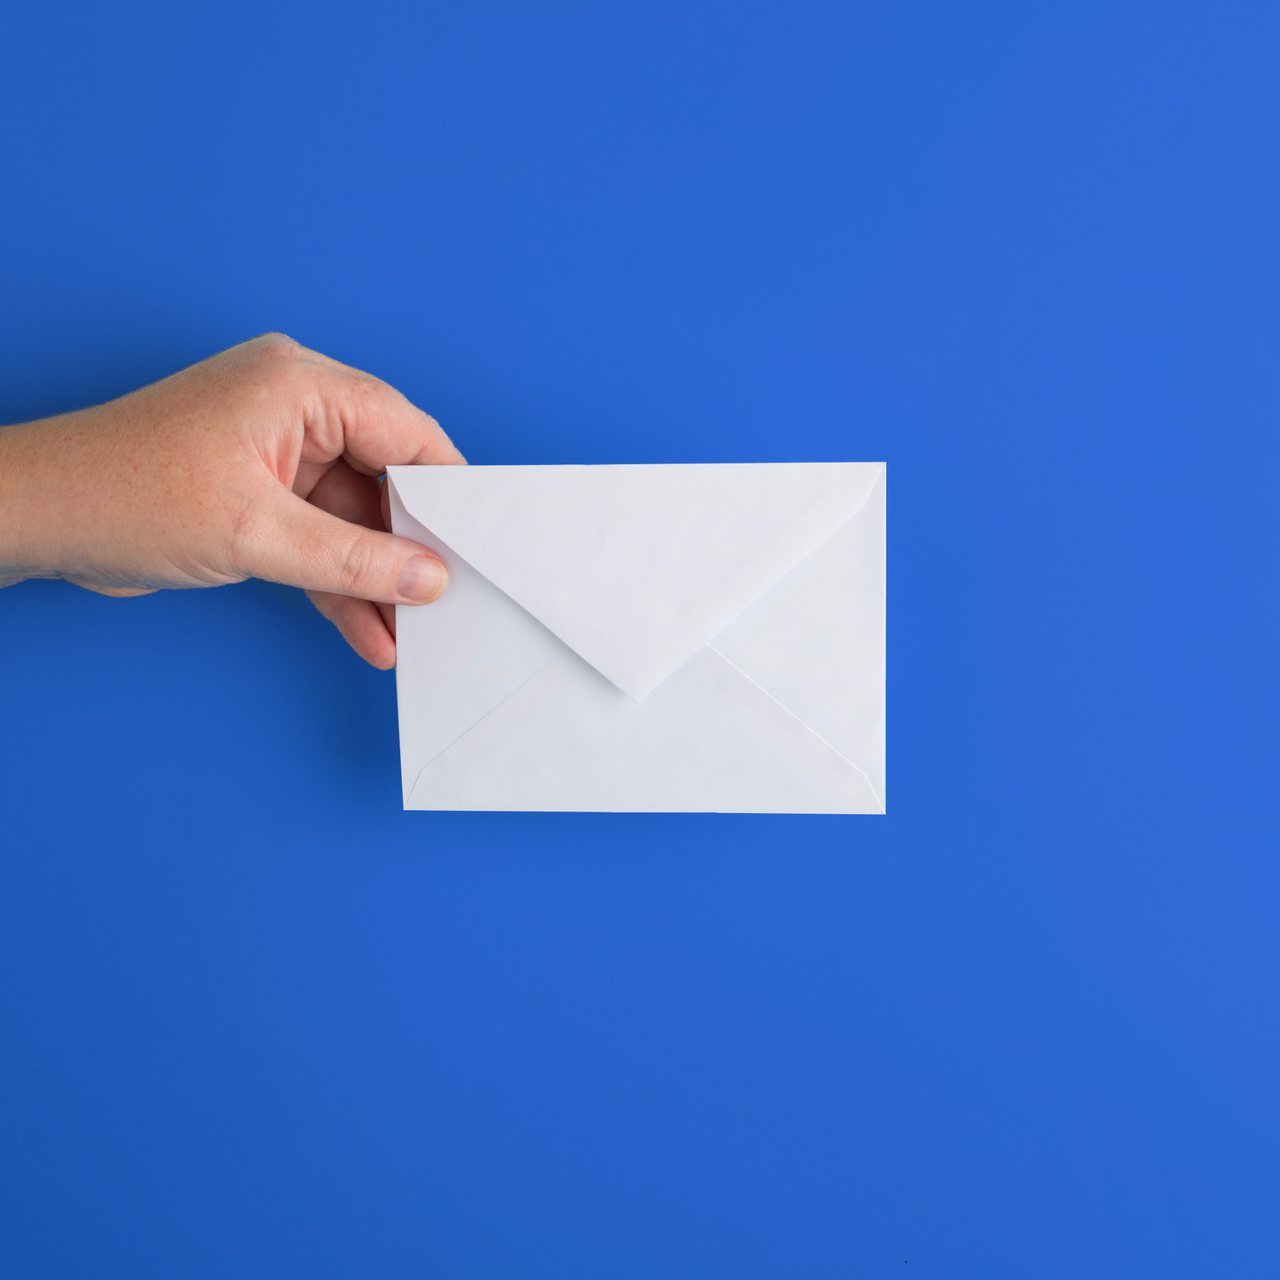 hand holding an envelope in front of a blue background